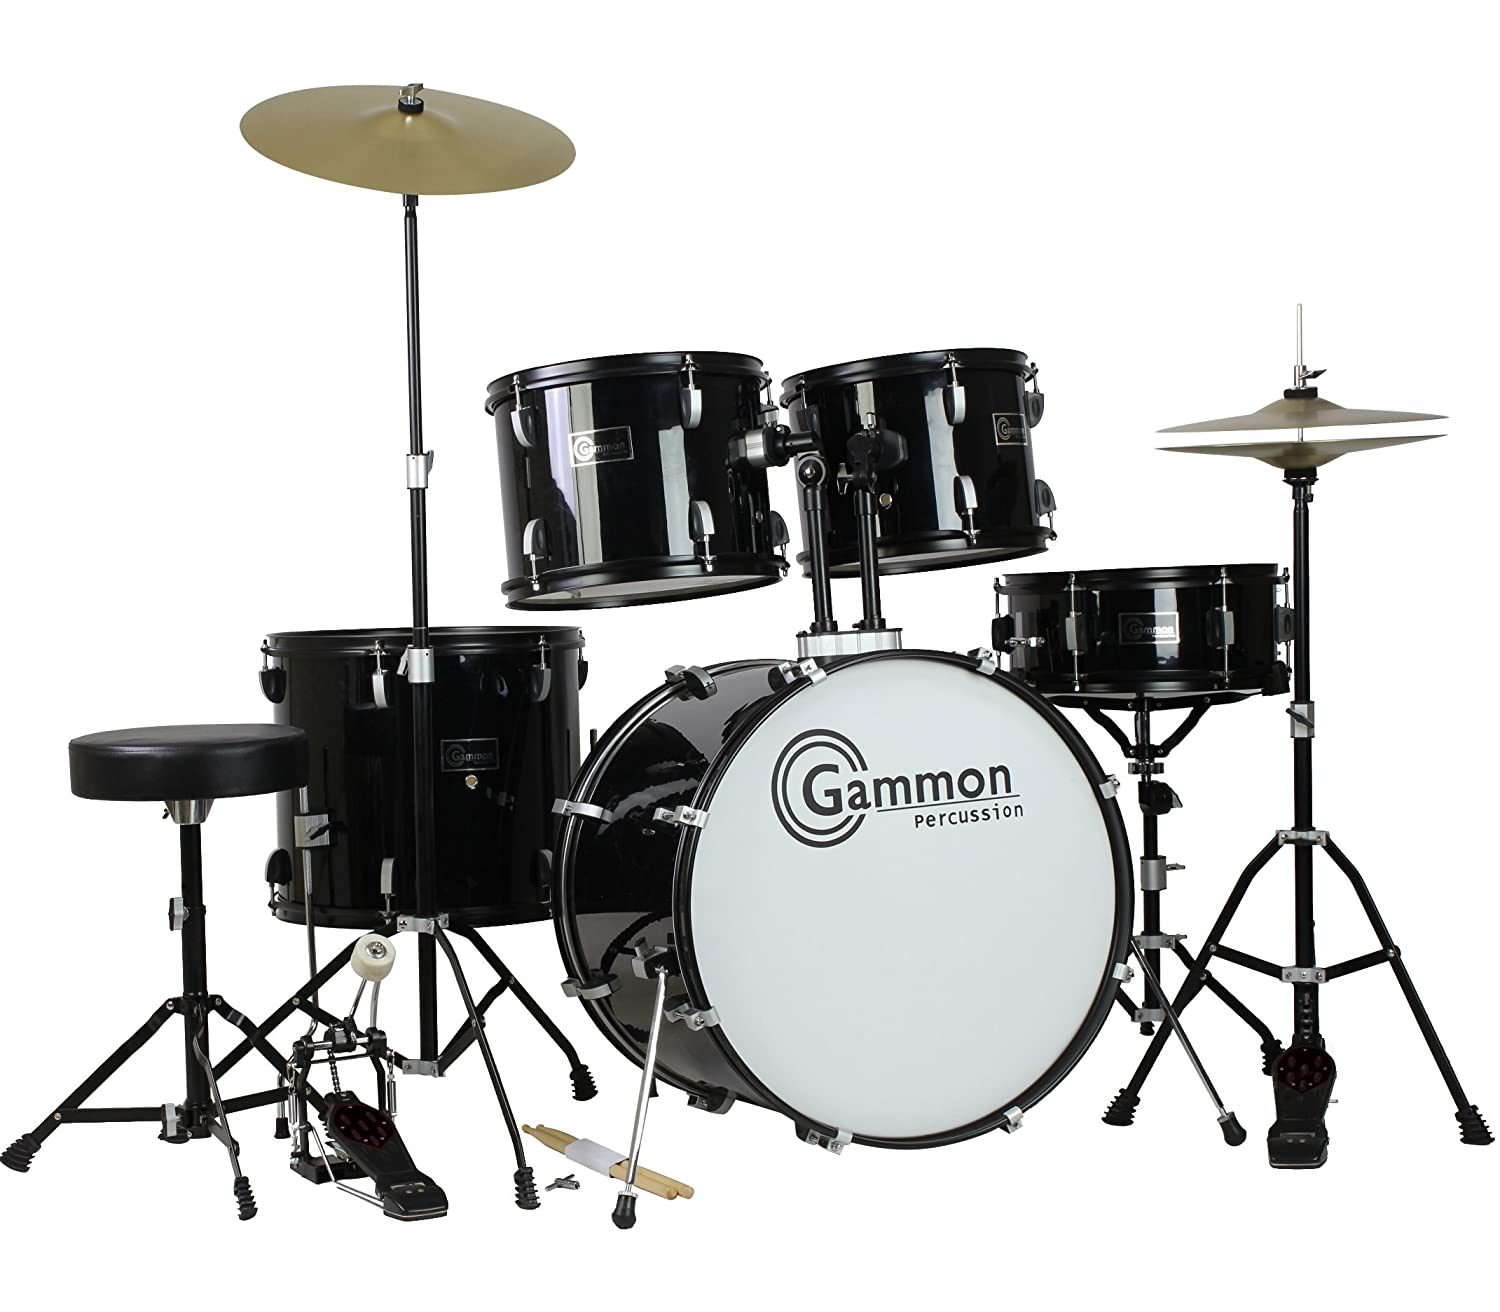 Gammon Percussion Complete 5-Set Drum Kit